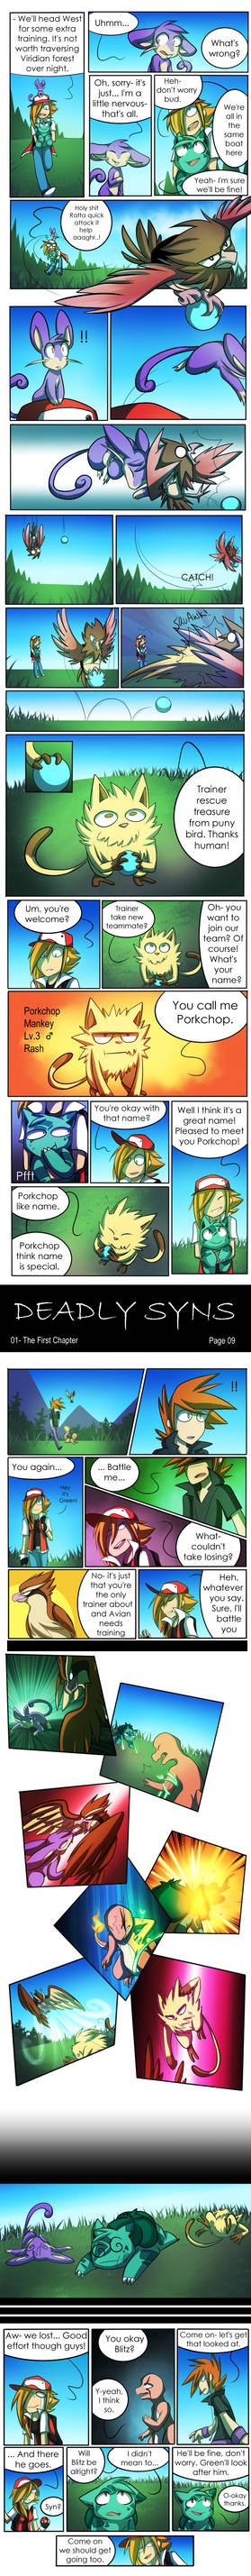 Deadly Syns- 09